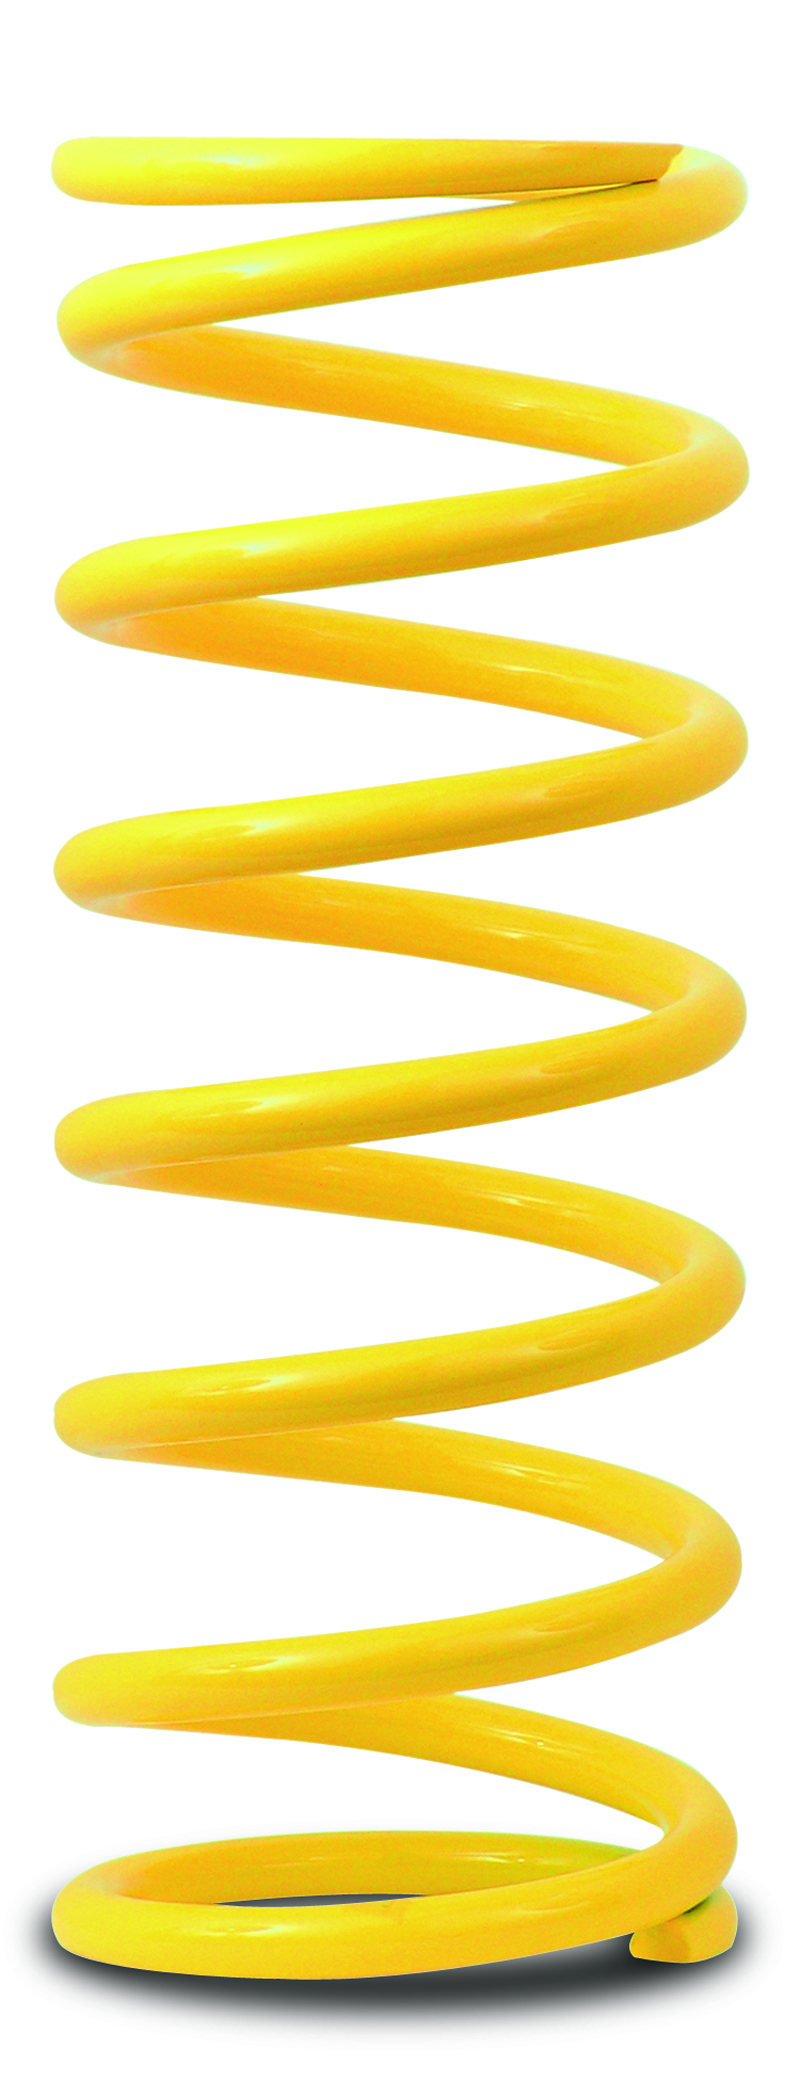 "5"" x 8"" Spring  AFCOIL® Yellow"